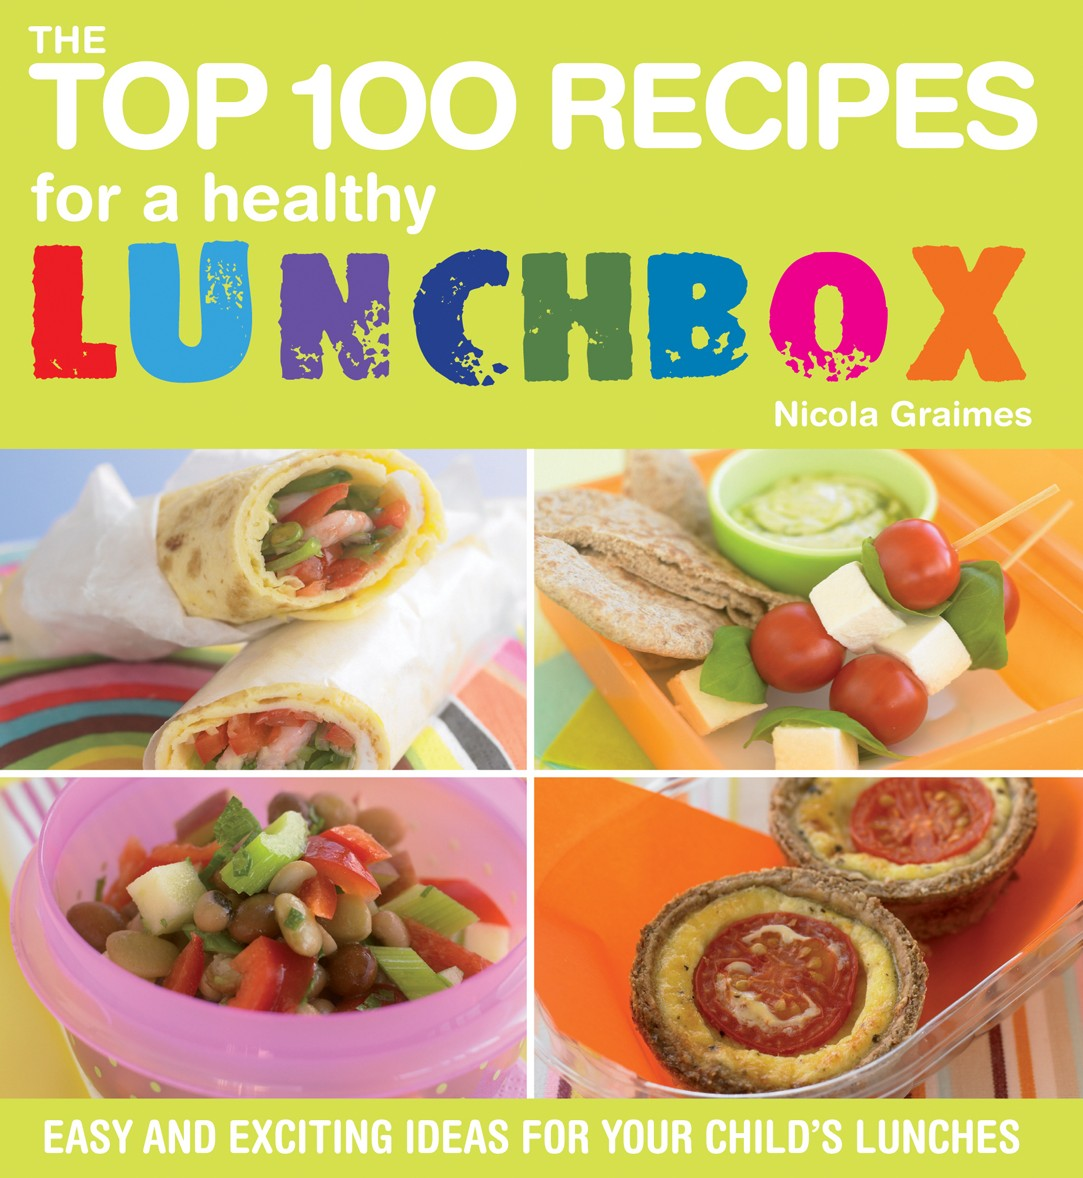 Easy and exciting ideas for your child's lunches